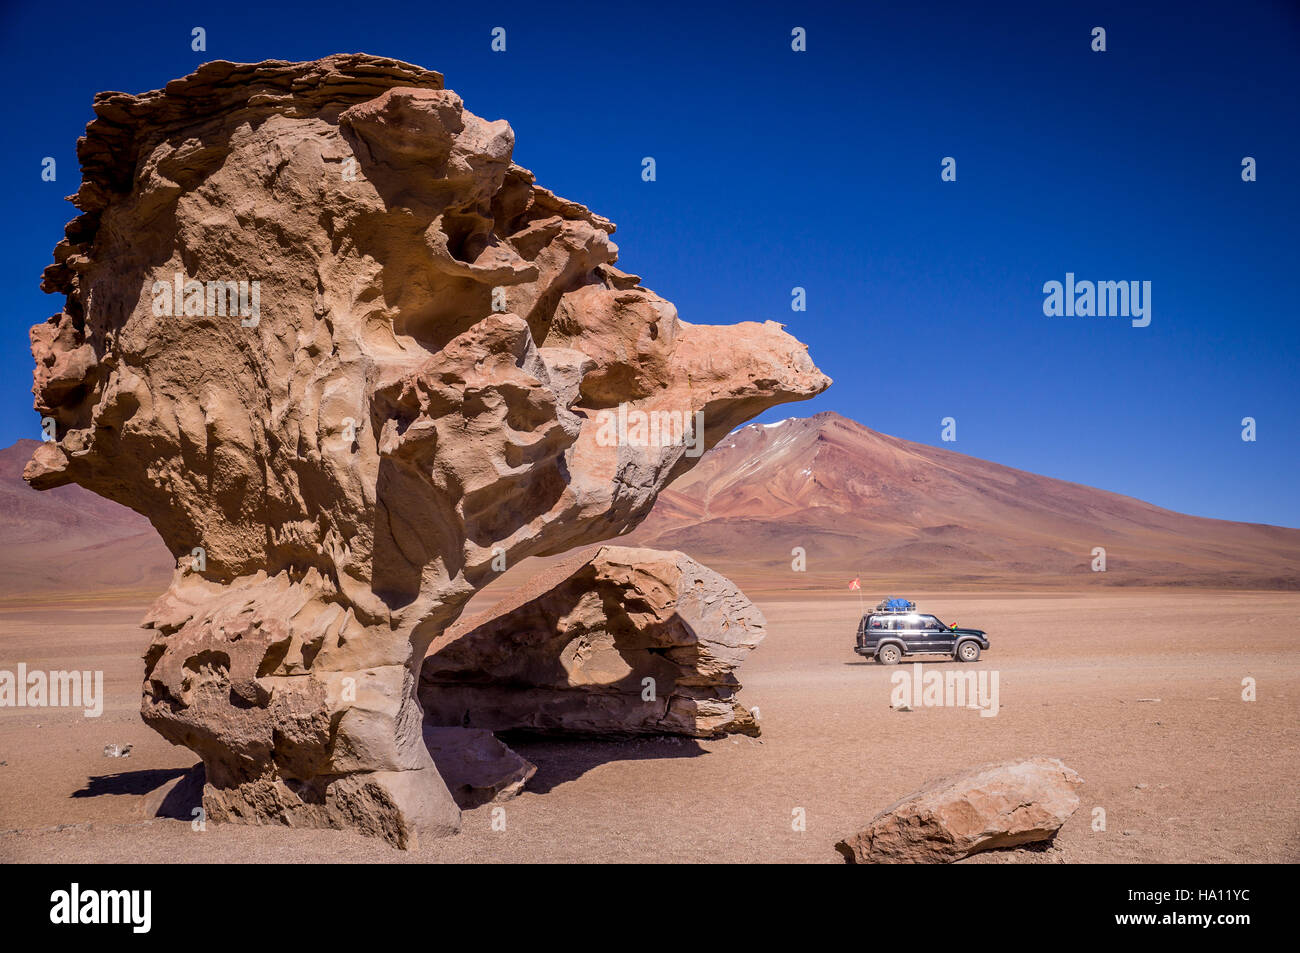 Jeep at Arbol de Piedra near Uyuni - Stock Image